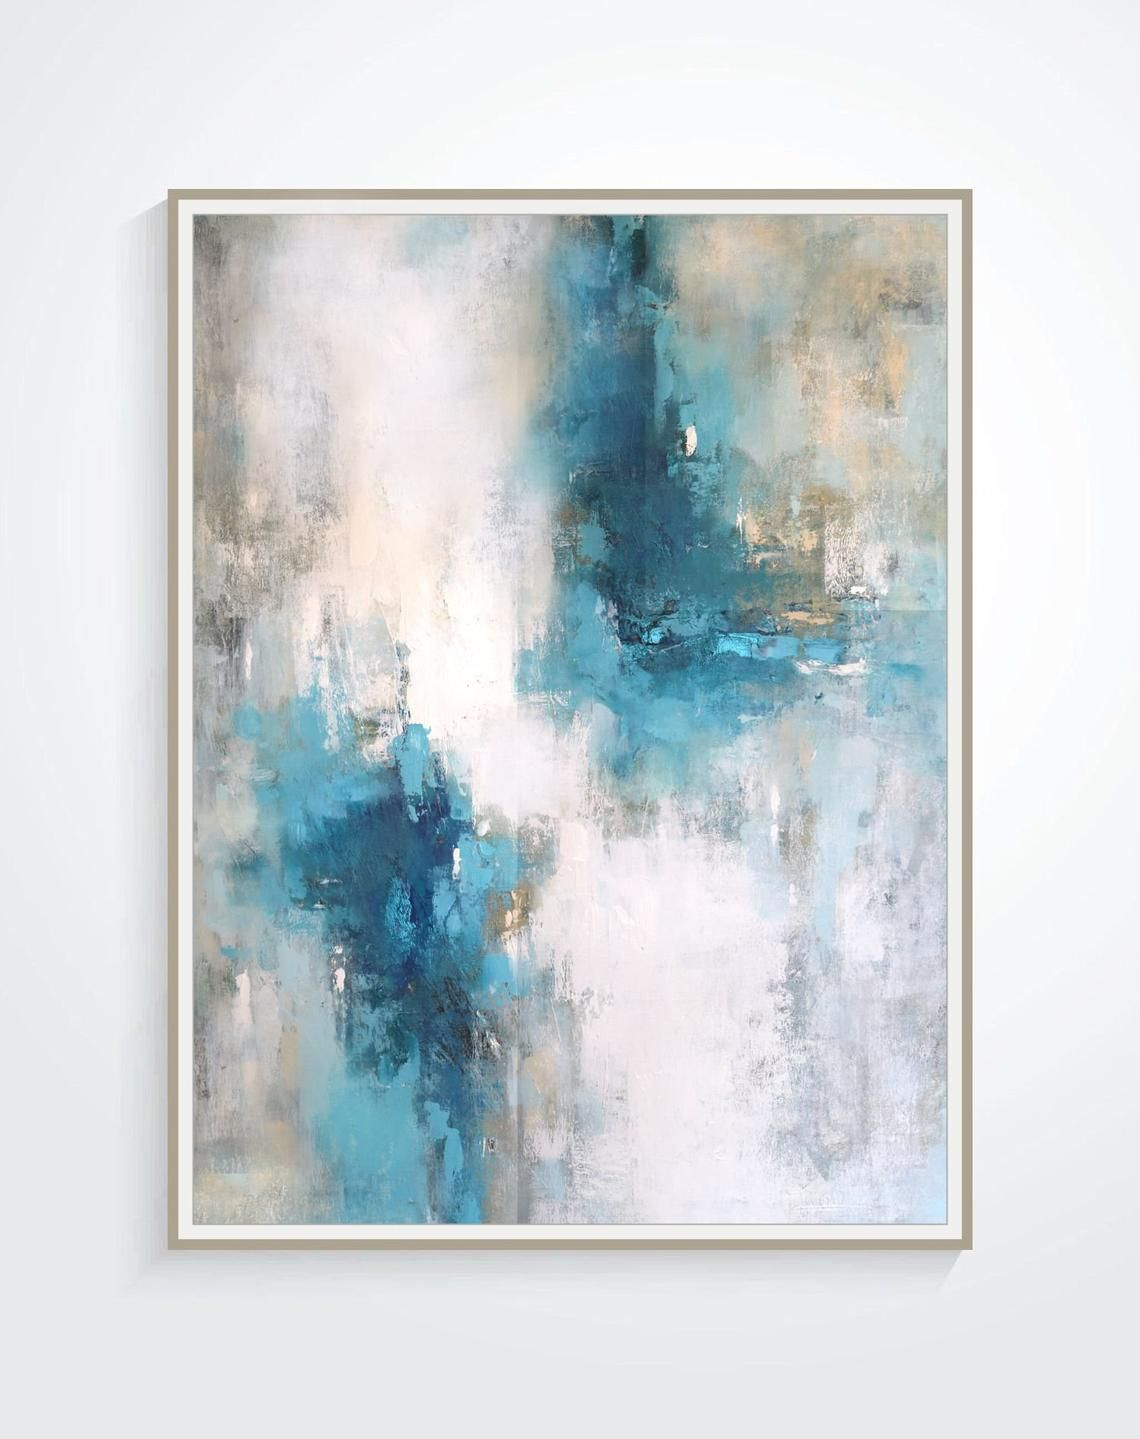 Original abstract painting teal blue white gray colors etsy